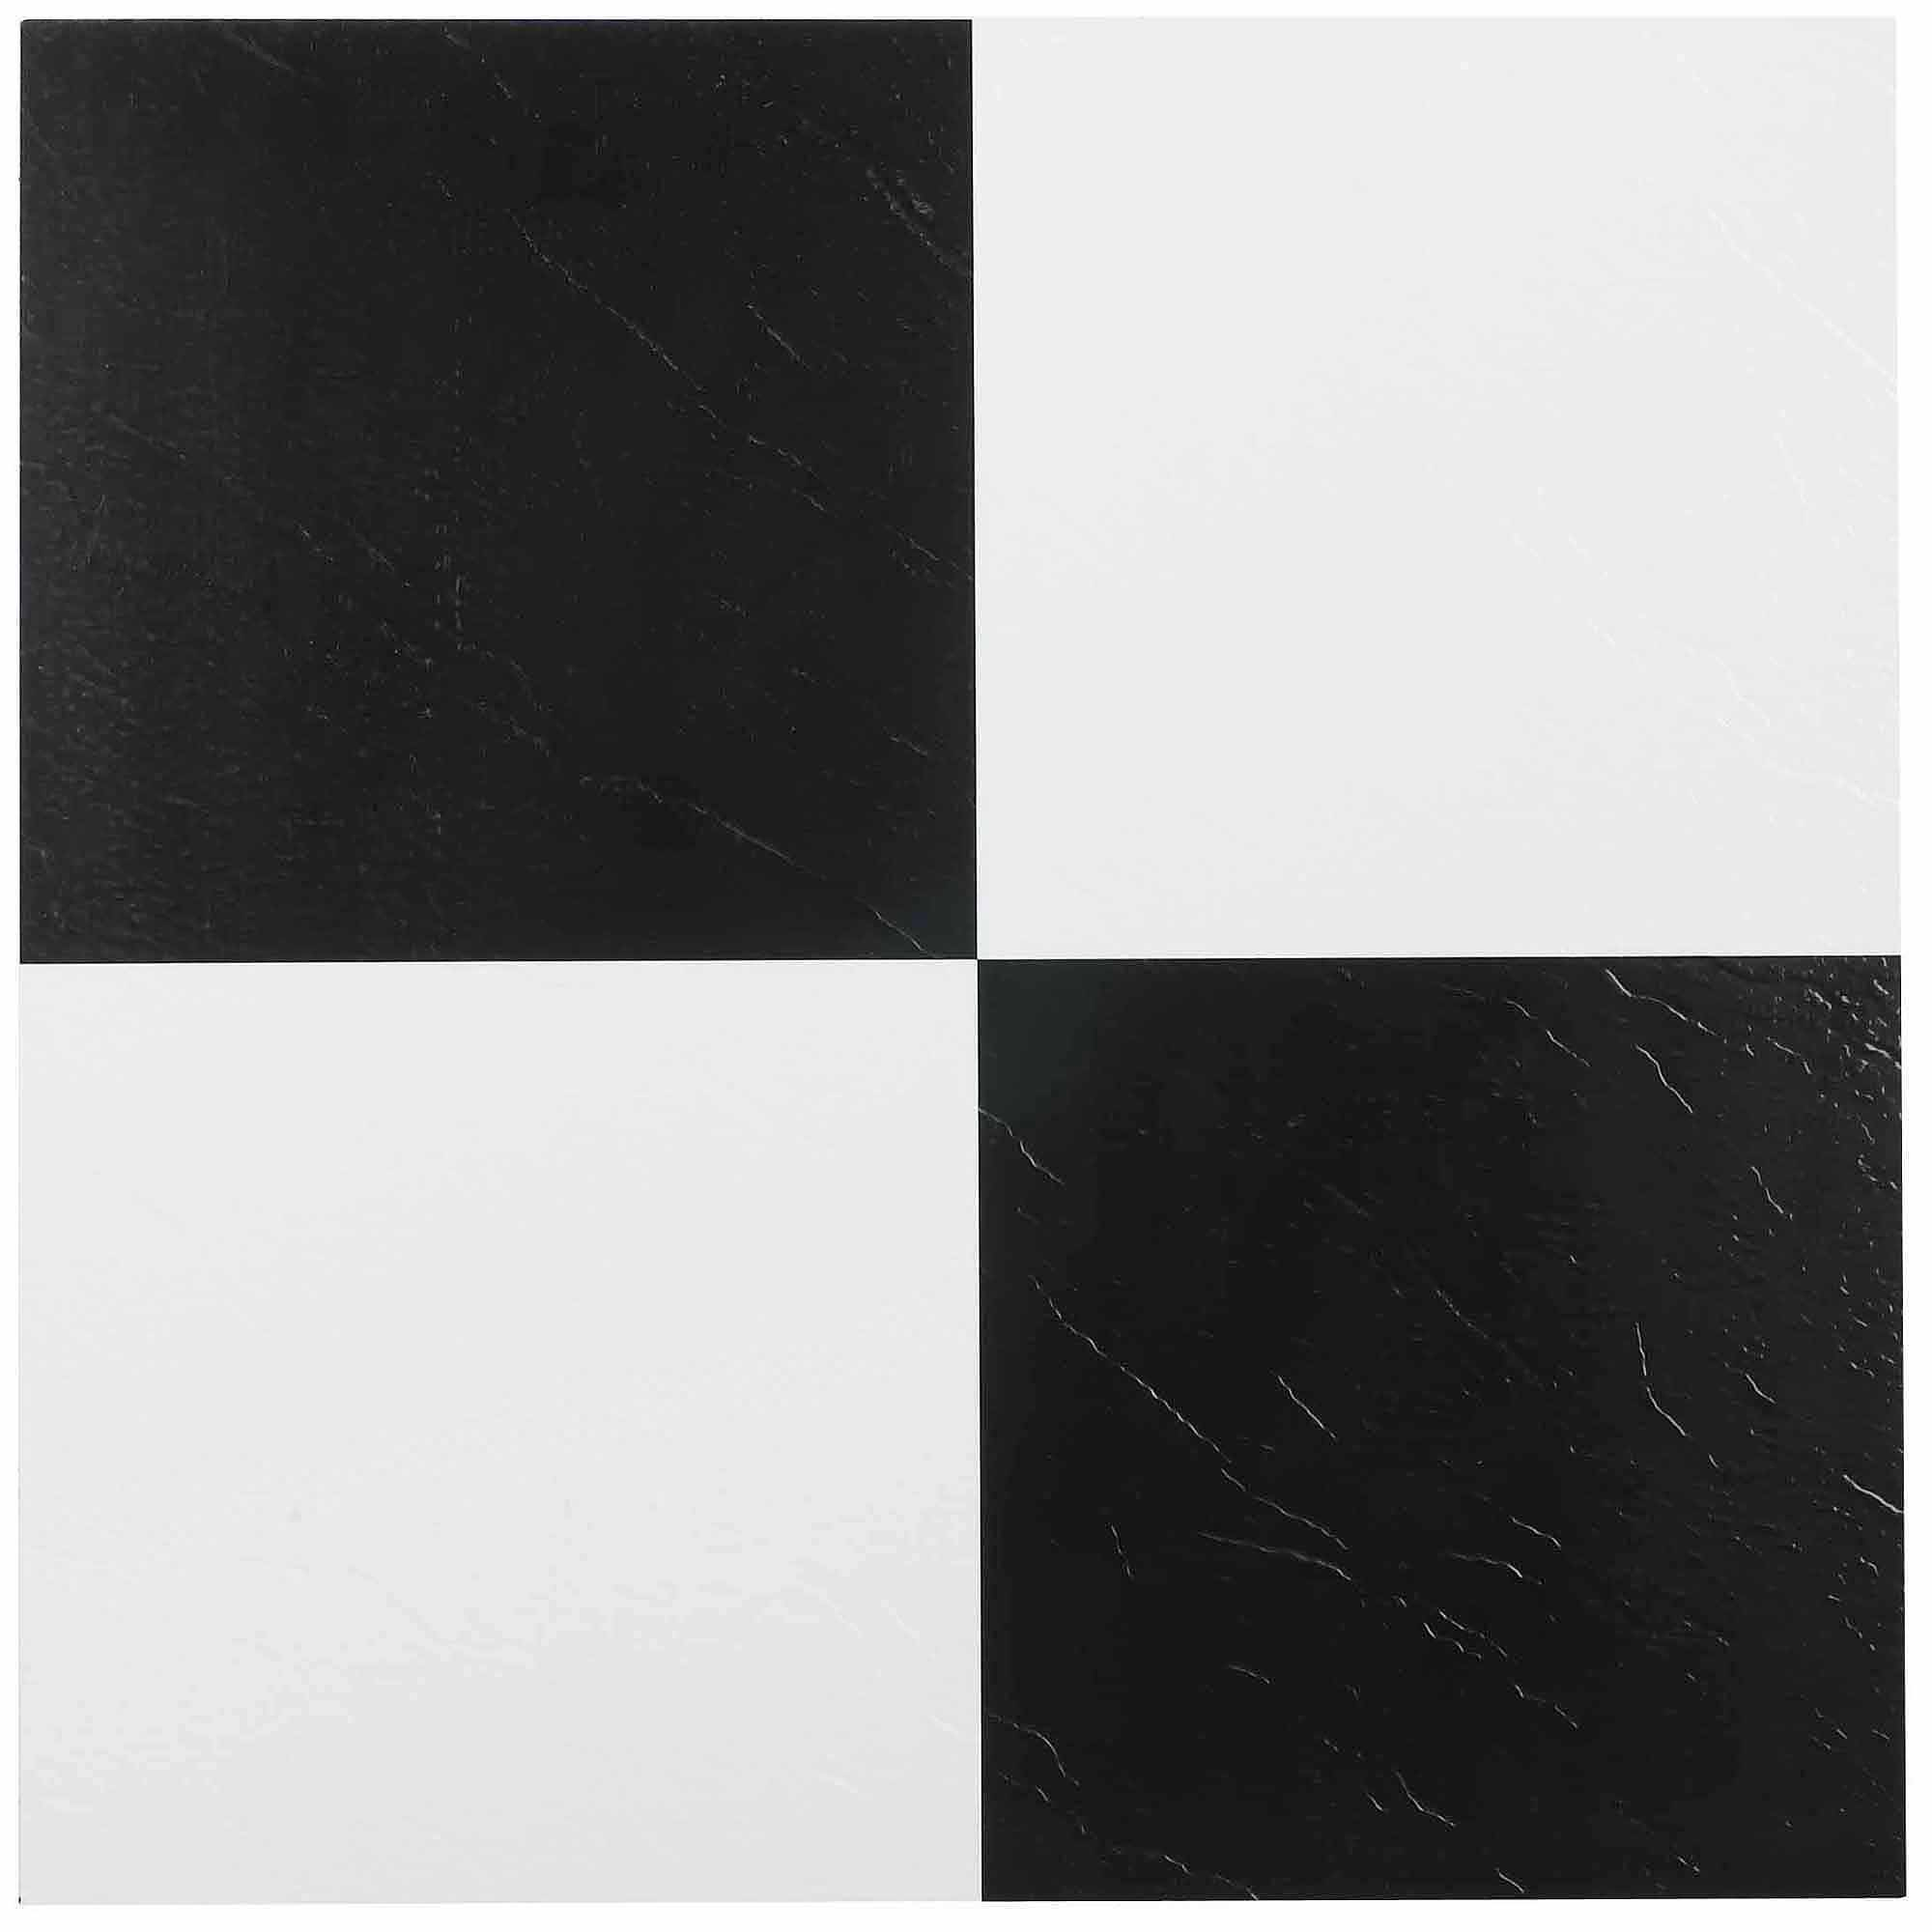 black and white tile floor. NEXUS Black  White 12x12 Self Adhesive Vinyl Floor Tile 20 Tiles Sq Ft Walmart com